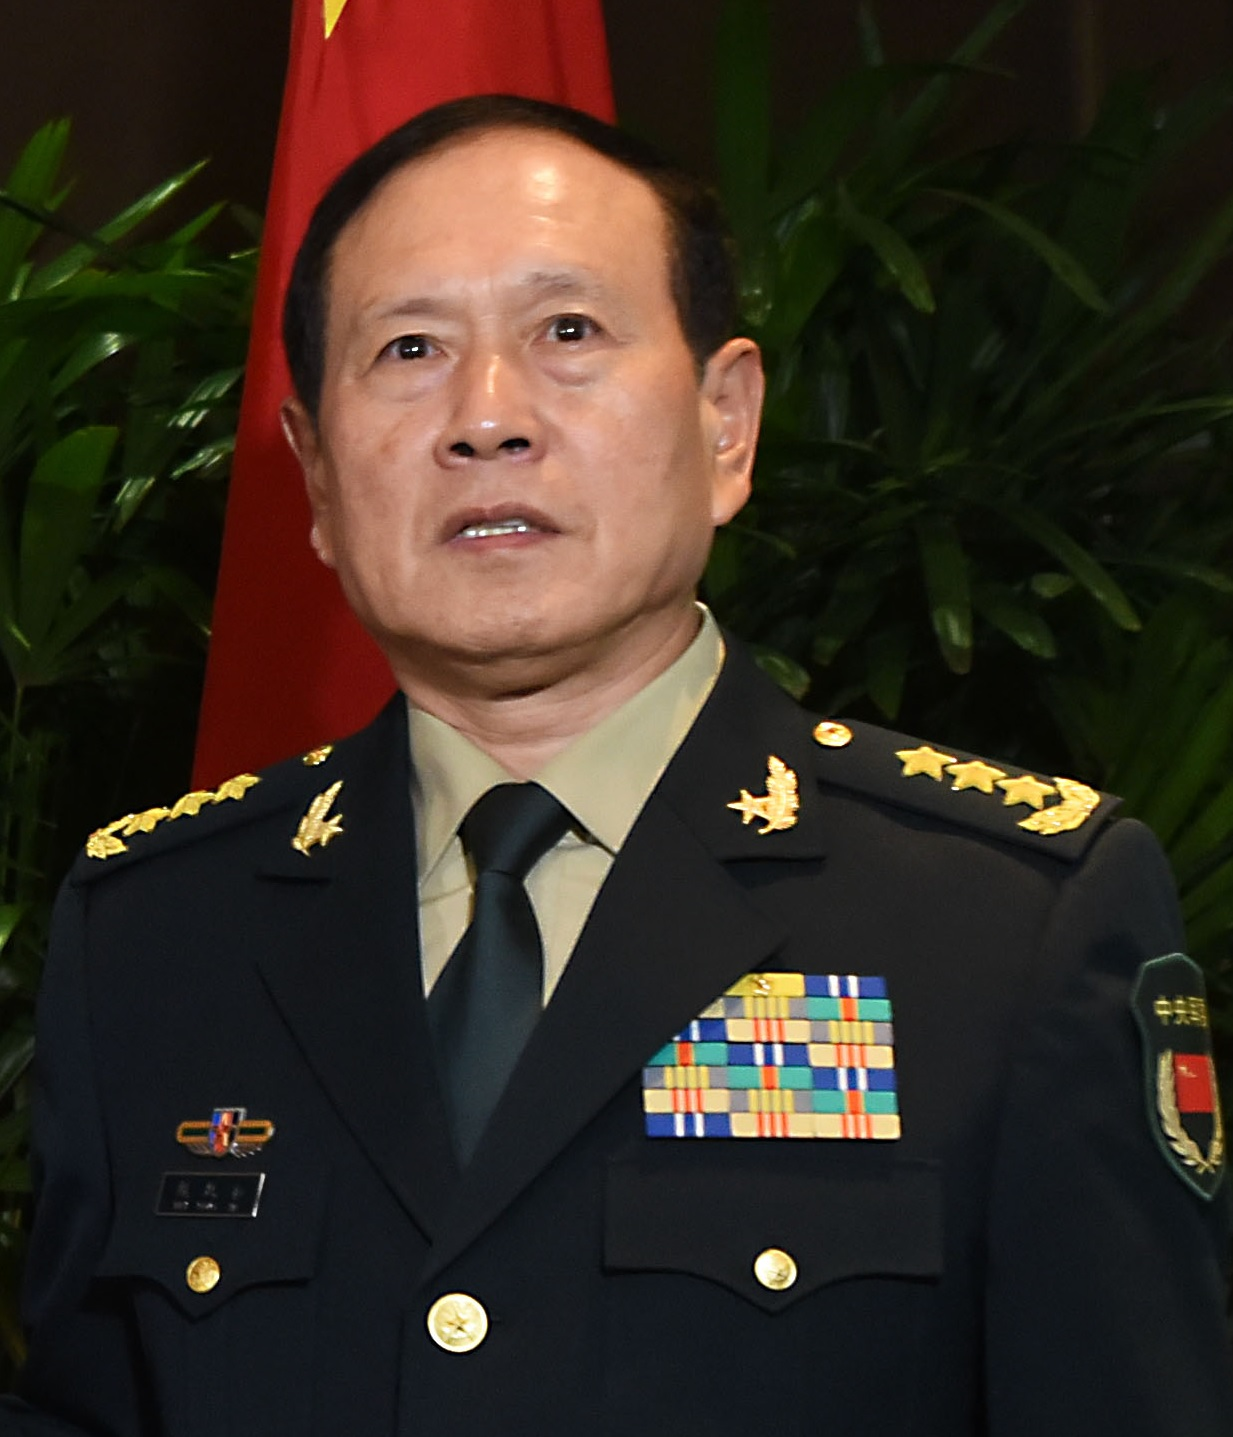 China's defense minister Wei is arriving in Nepal on November 29